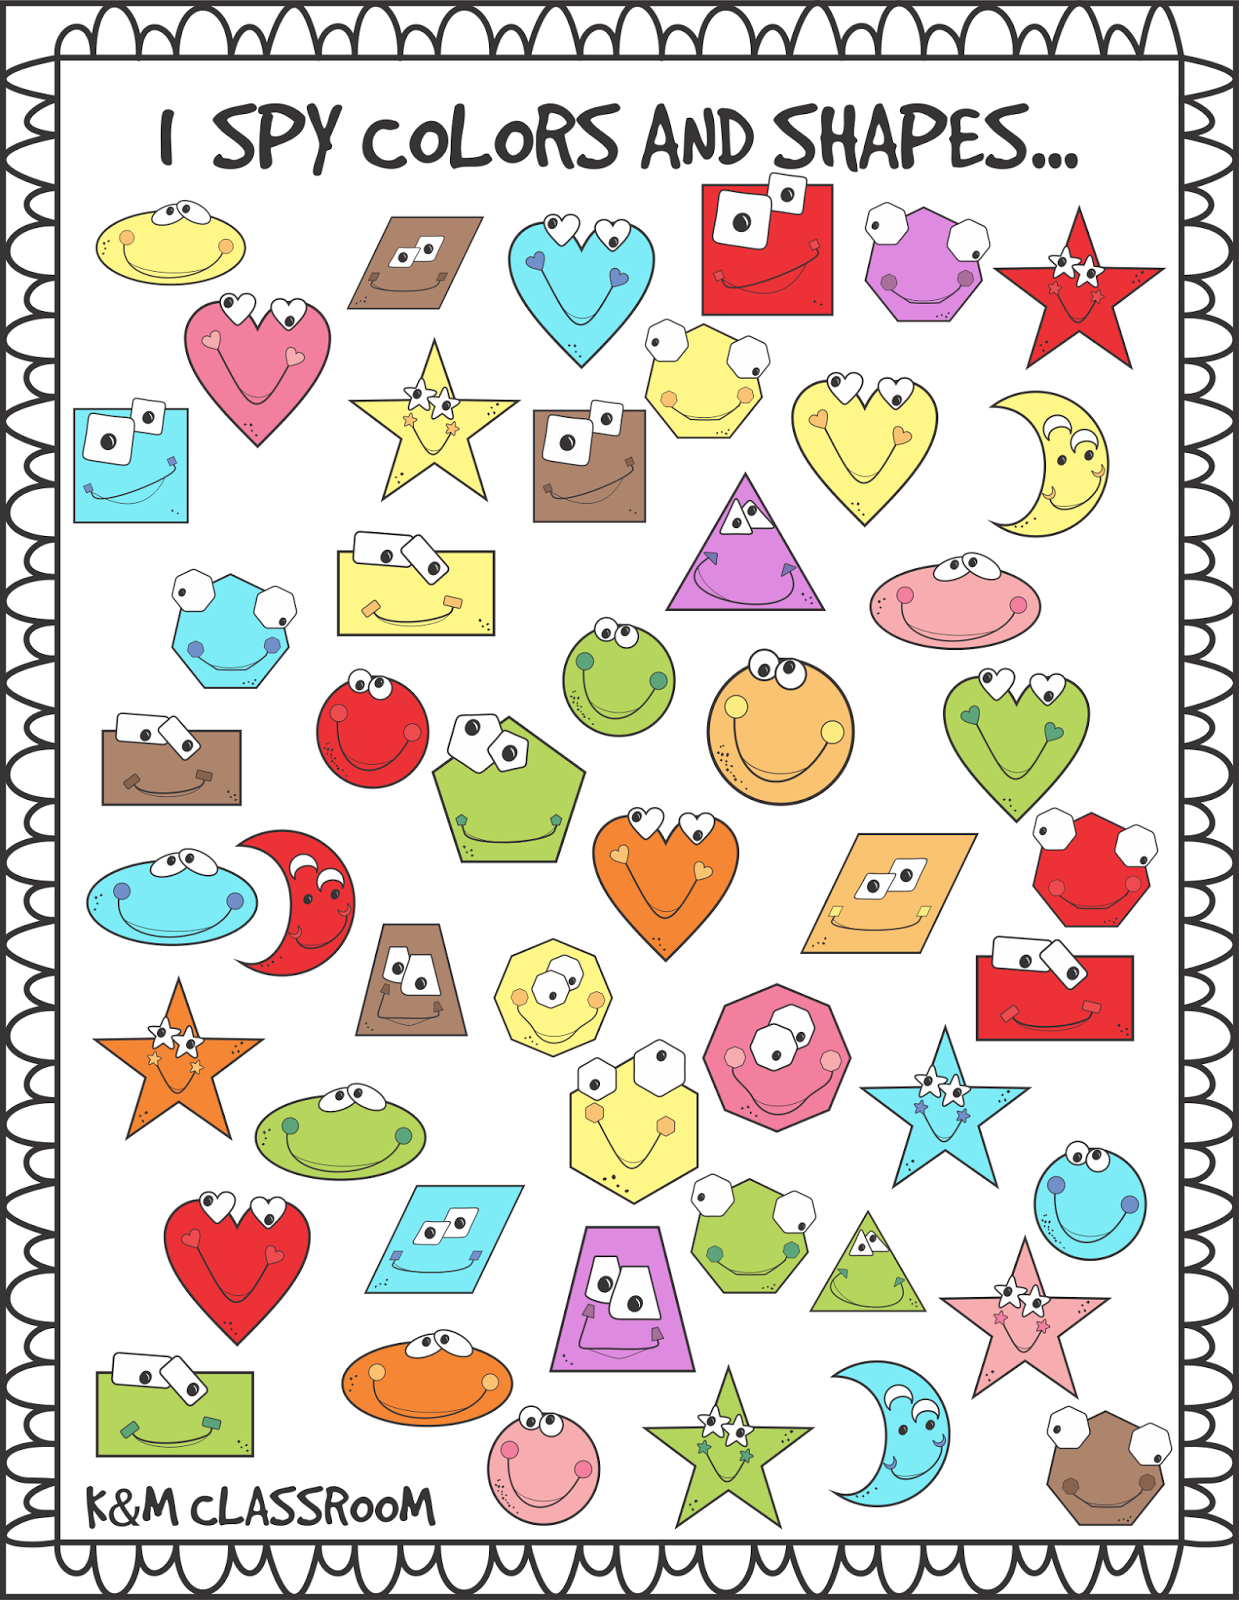 graphic relating to Shapes Printable called KM Clroom: I Spy Styles